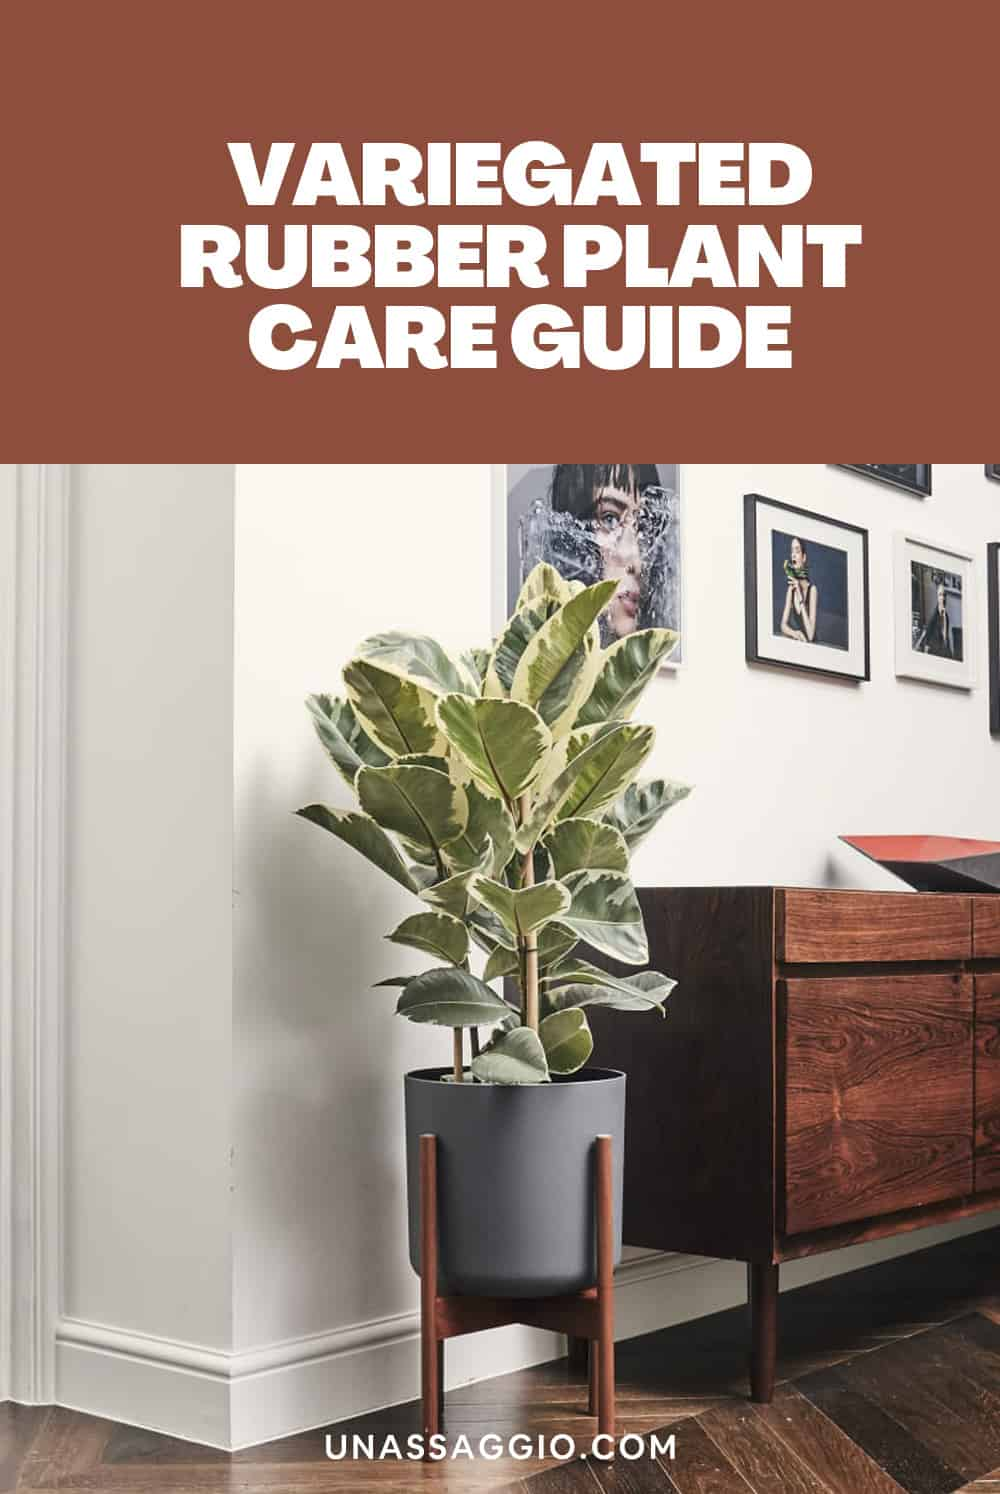 variegated rubber plant CARE GUIDE